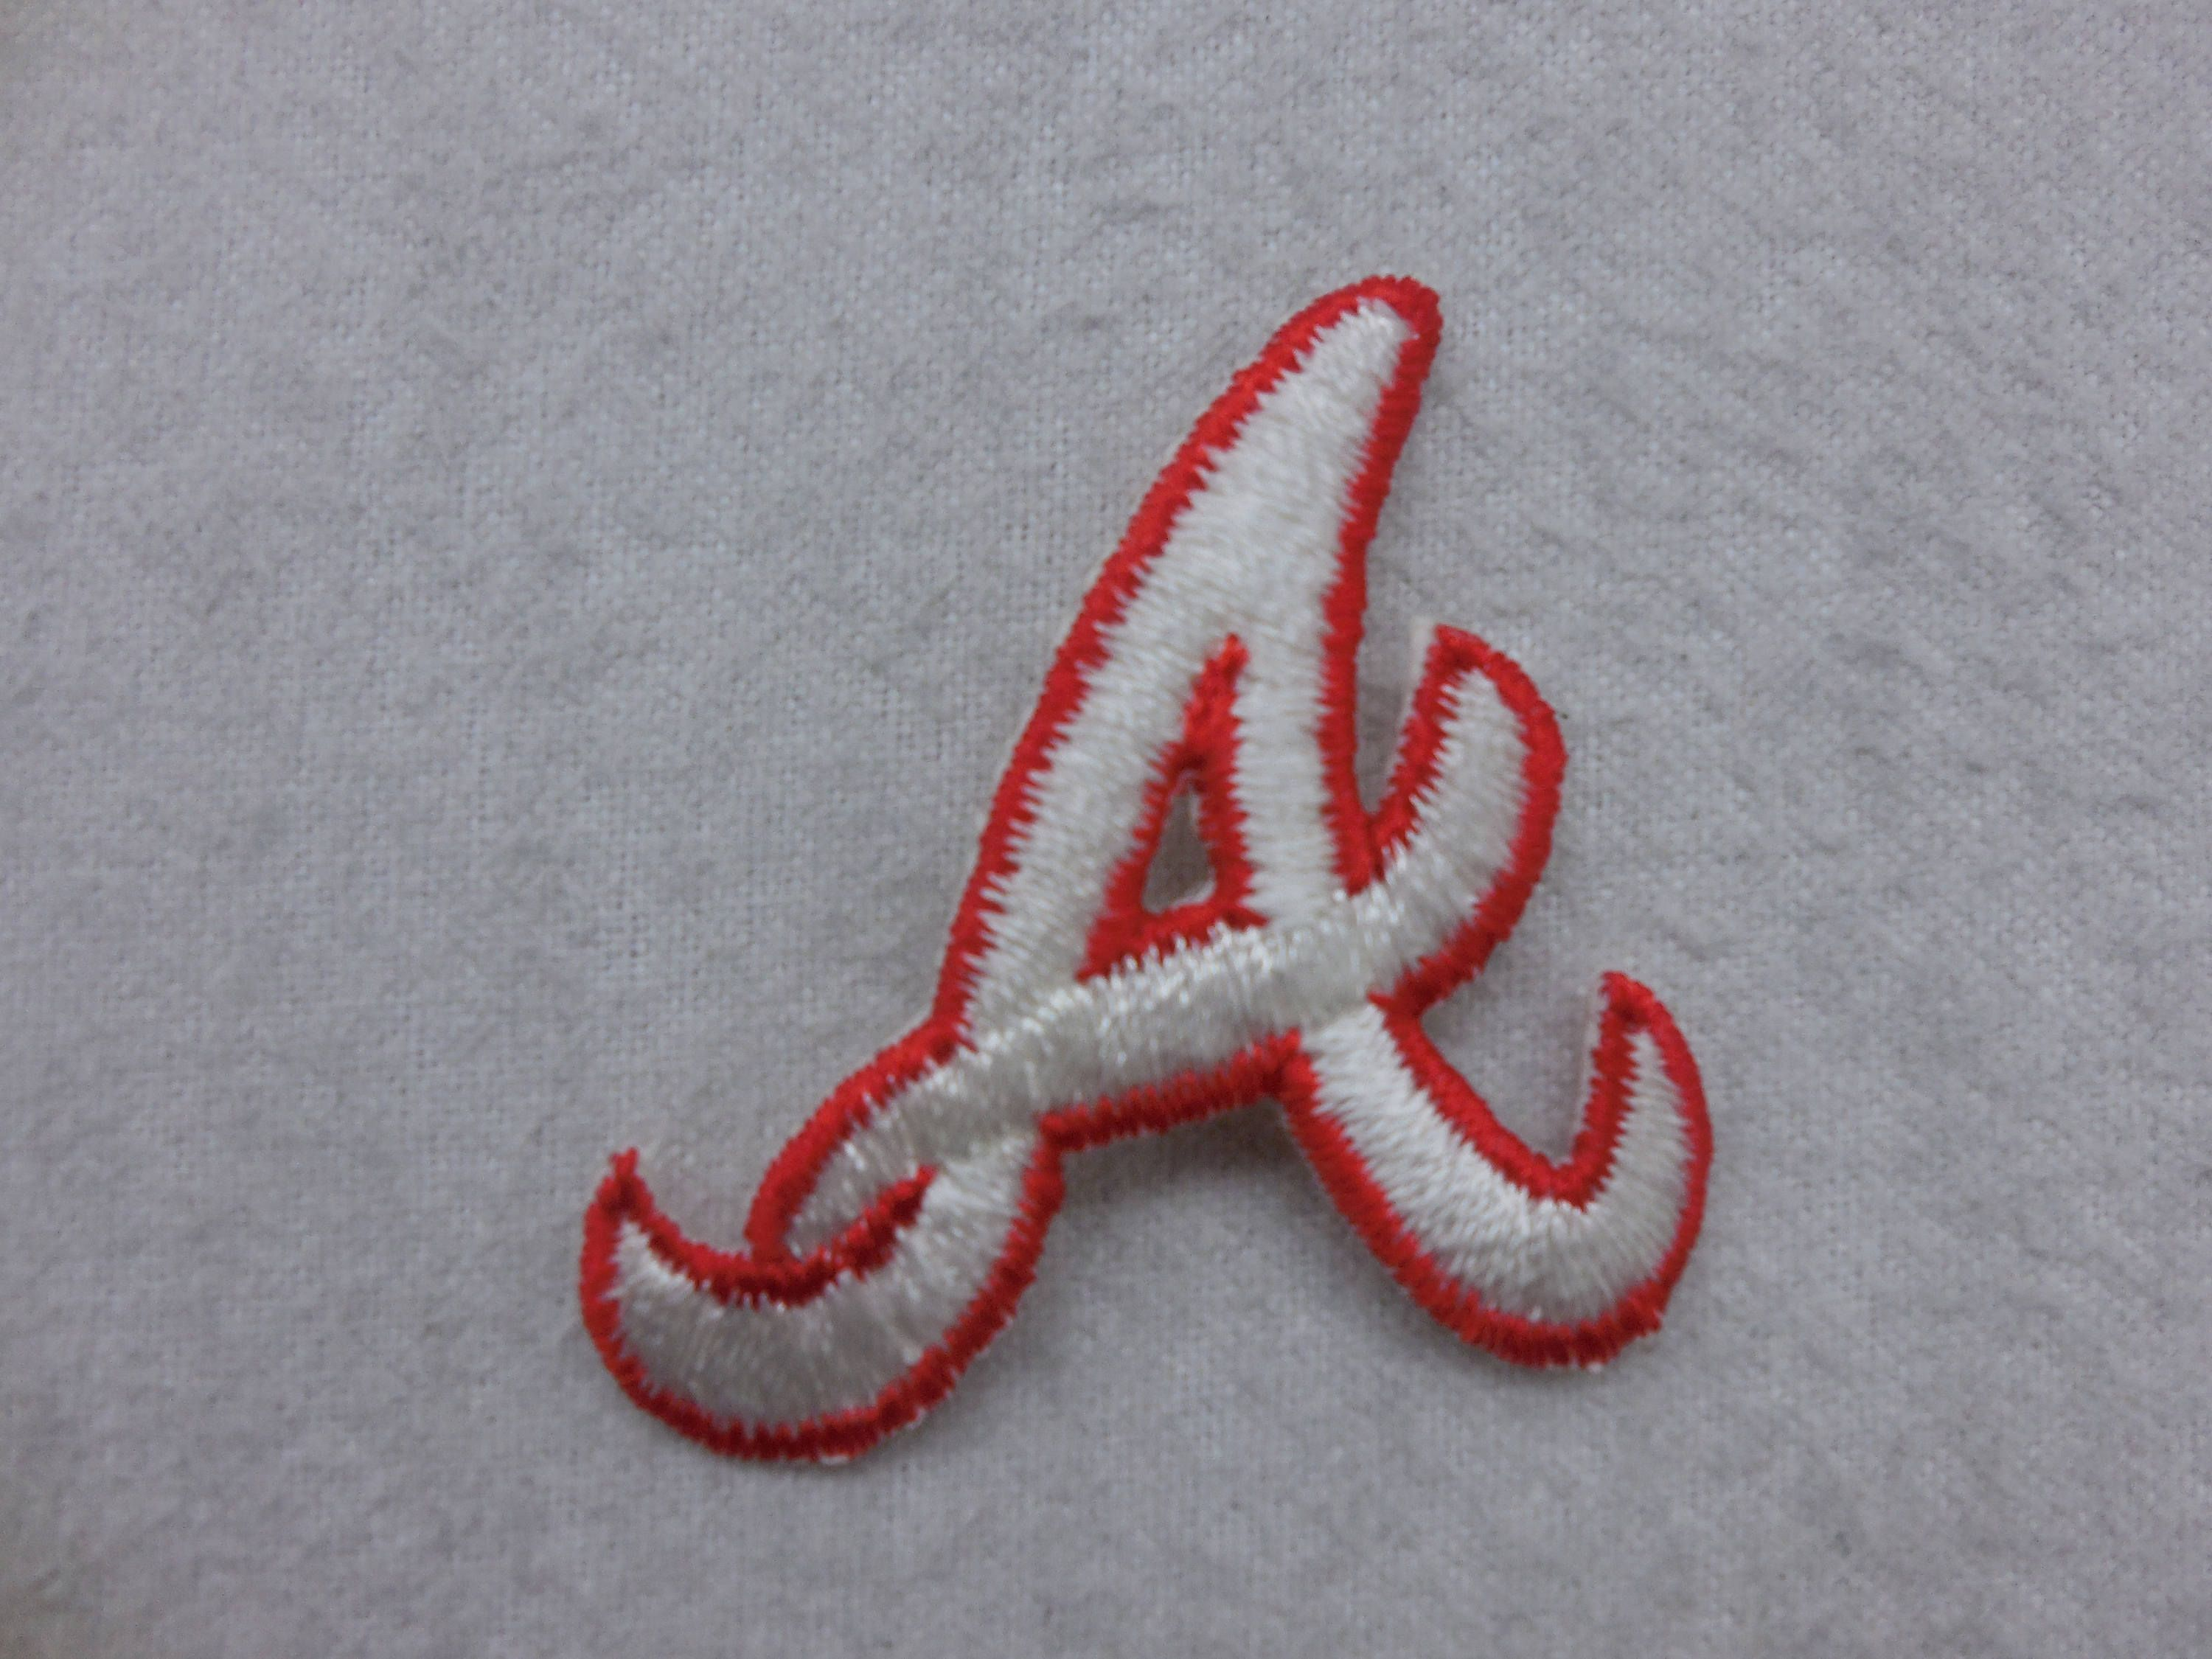 Atlanta Braves A Baseball Iron On Patch By Kcteedesigns On Etsy Iron On Patches Atlanta Braves Sew On Patches